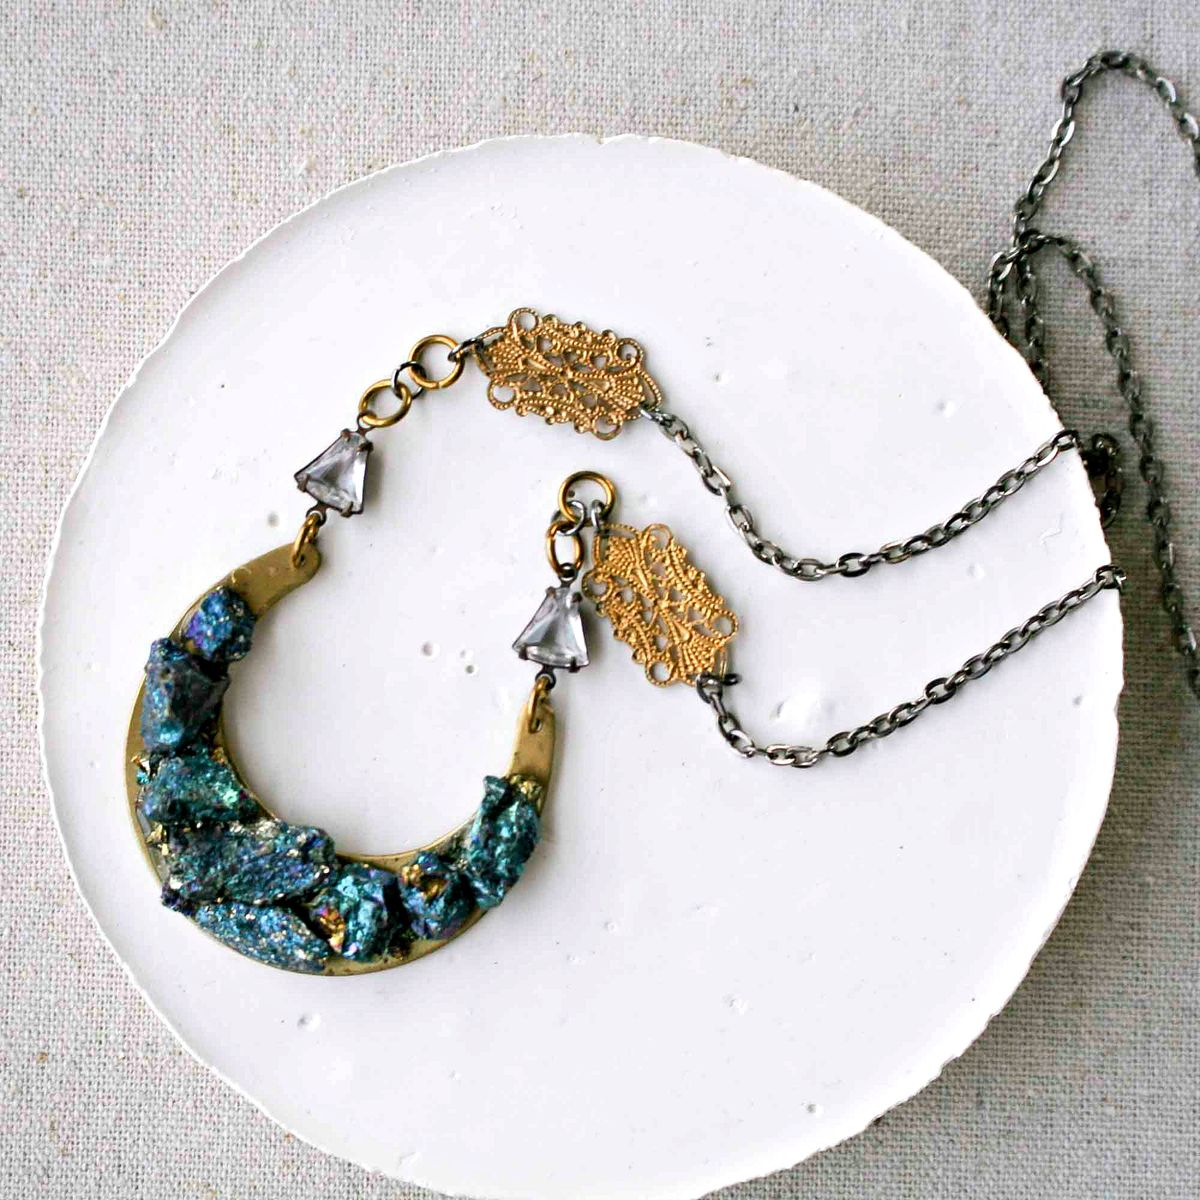 Peacock Ore Stones on a Brass Crescent Pendant Necklace - product image